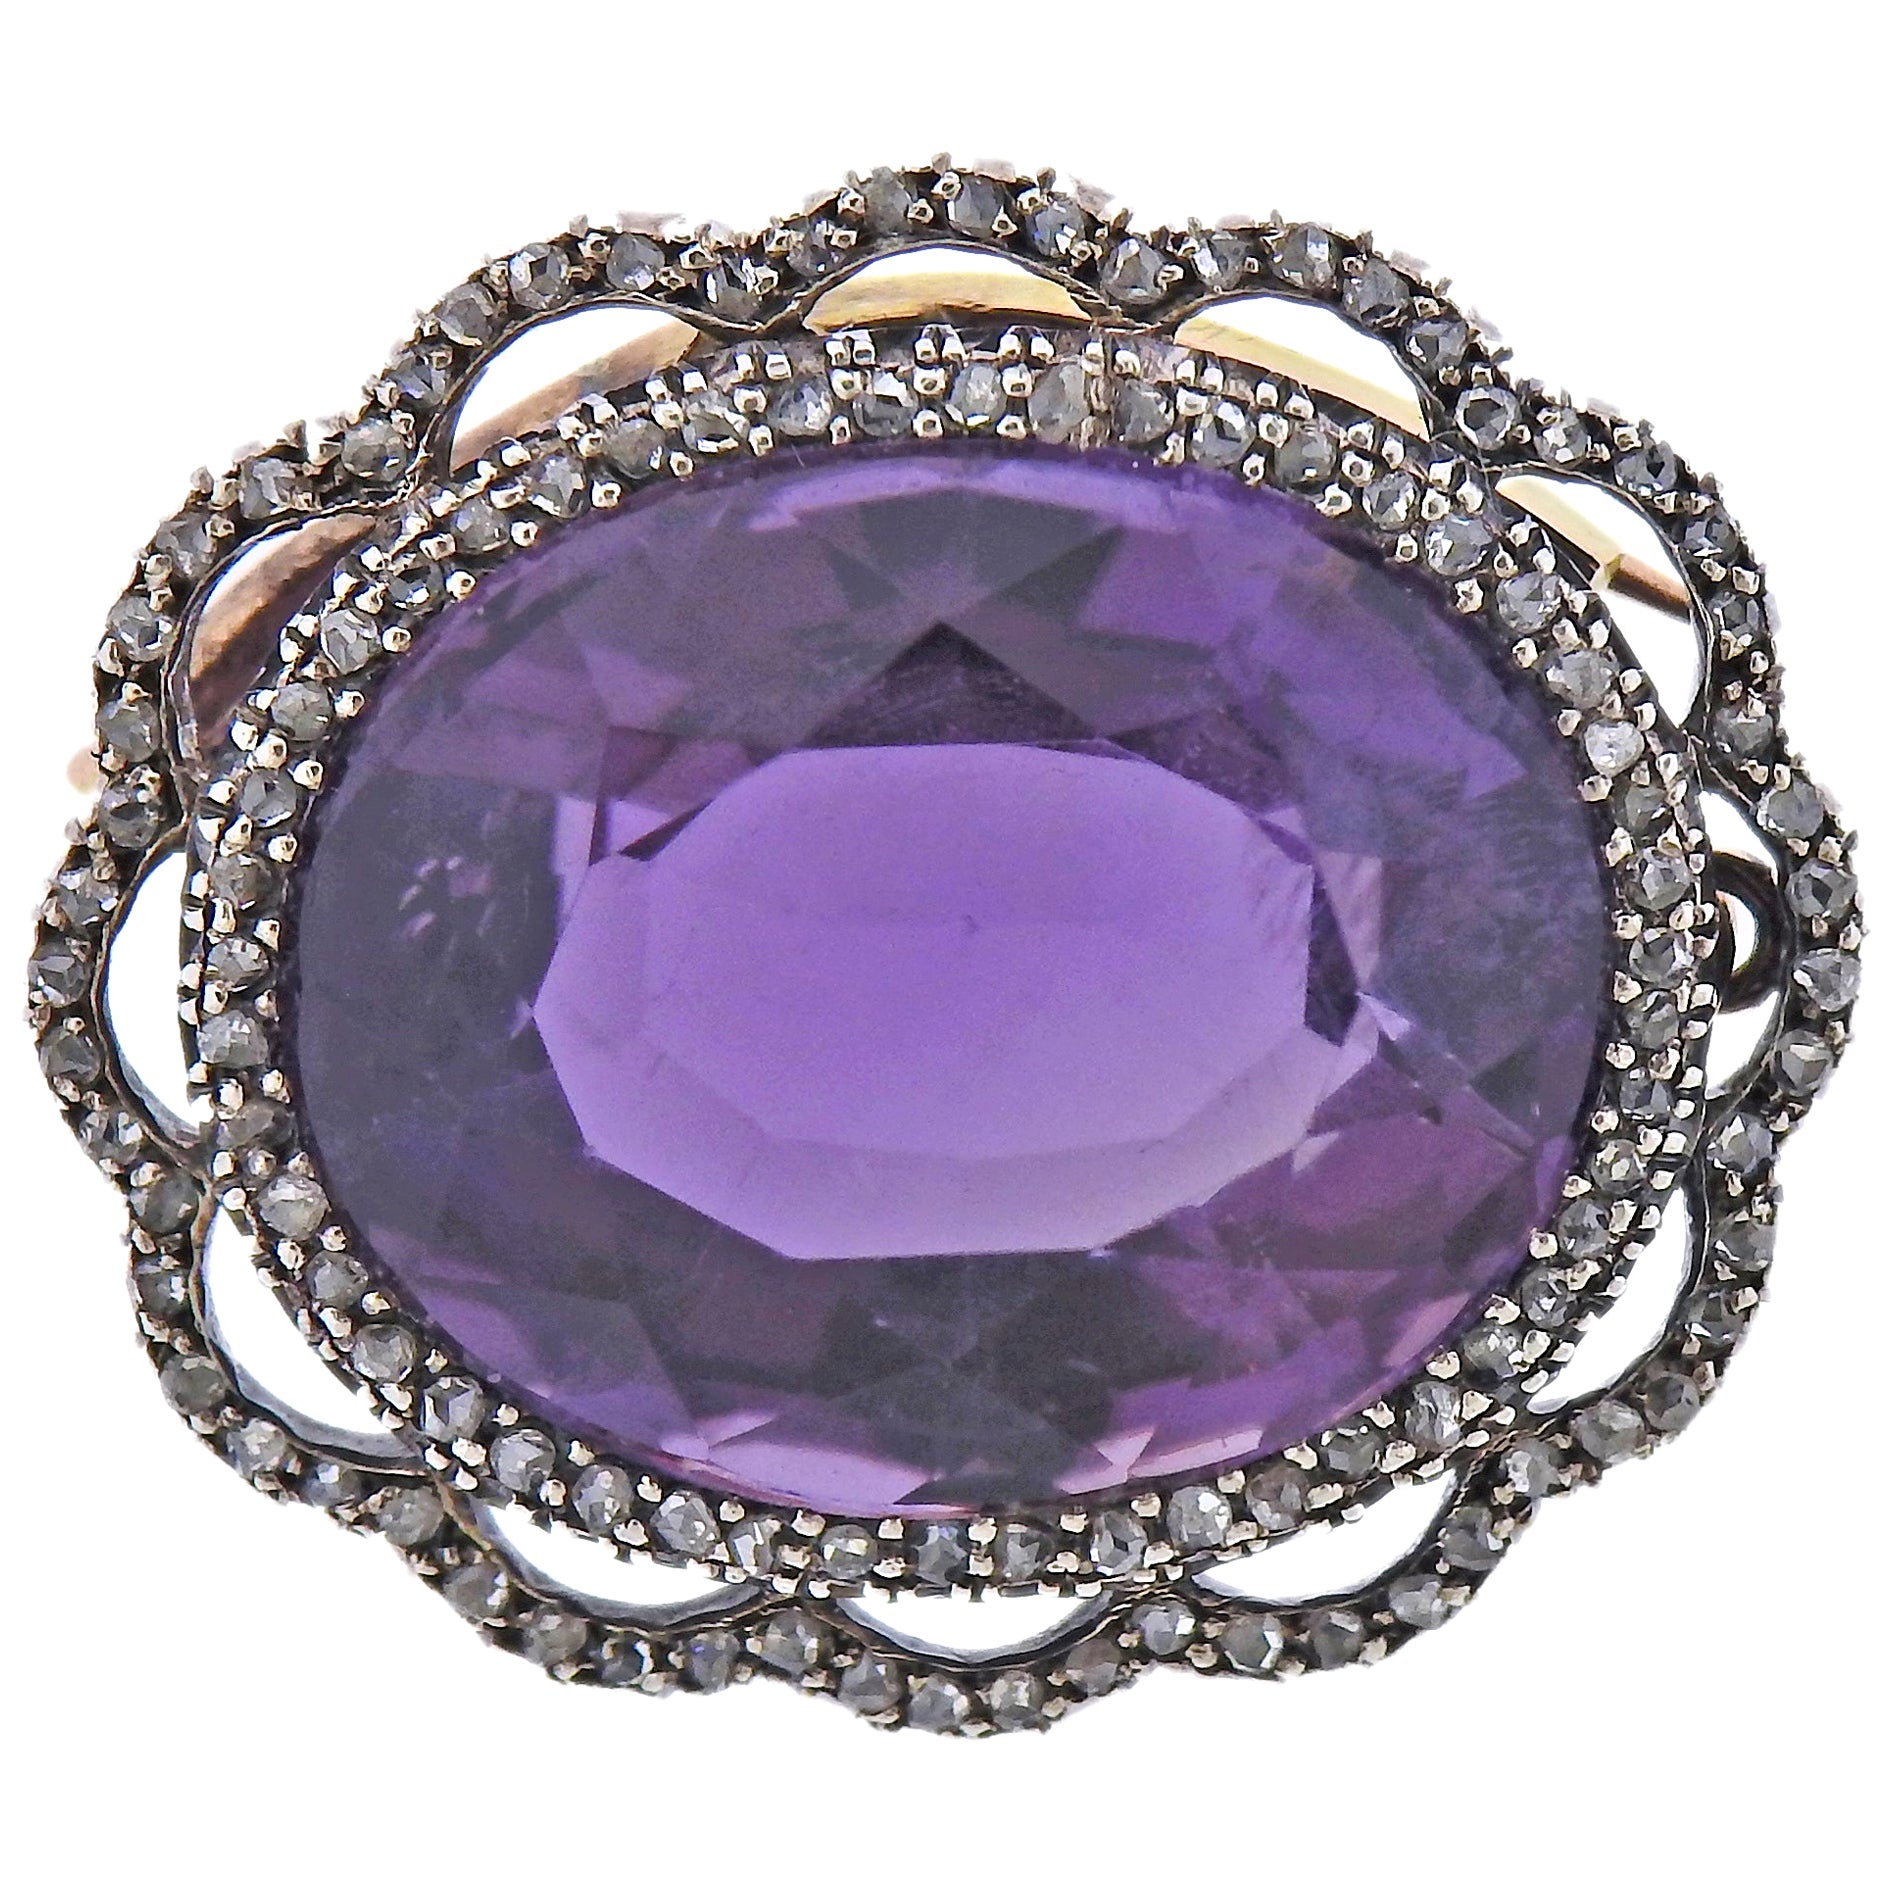 Antique Amethyst Diamond Gold Silver Brooch Pendant